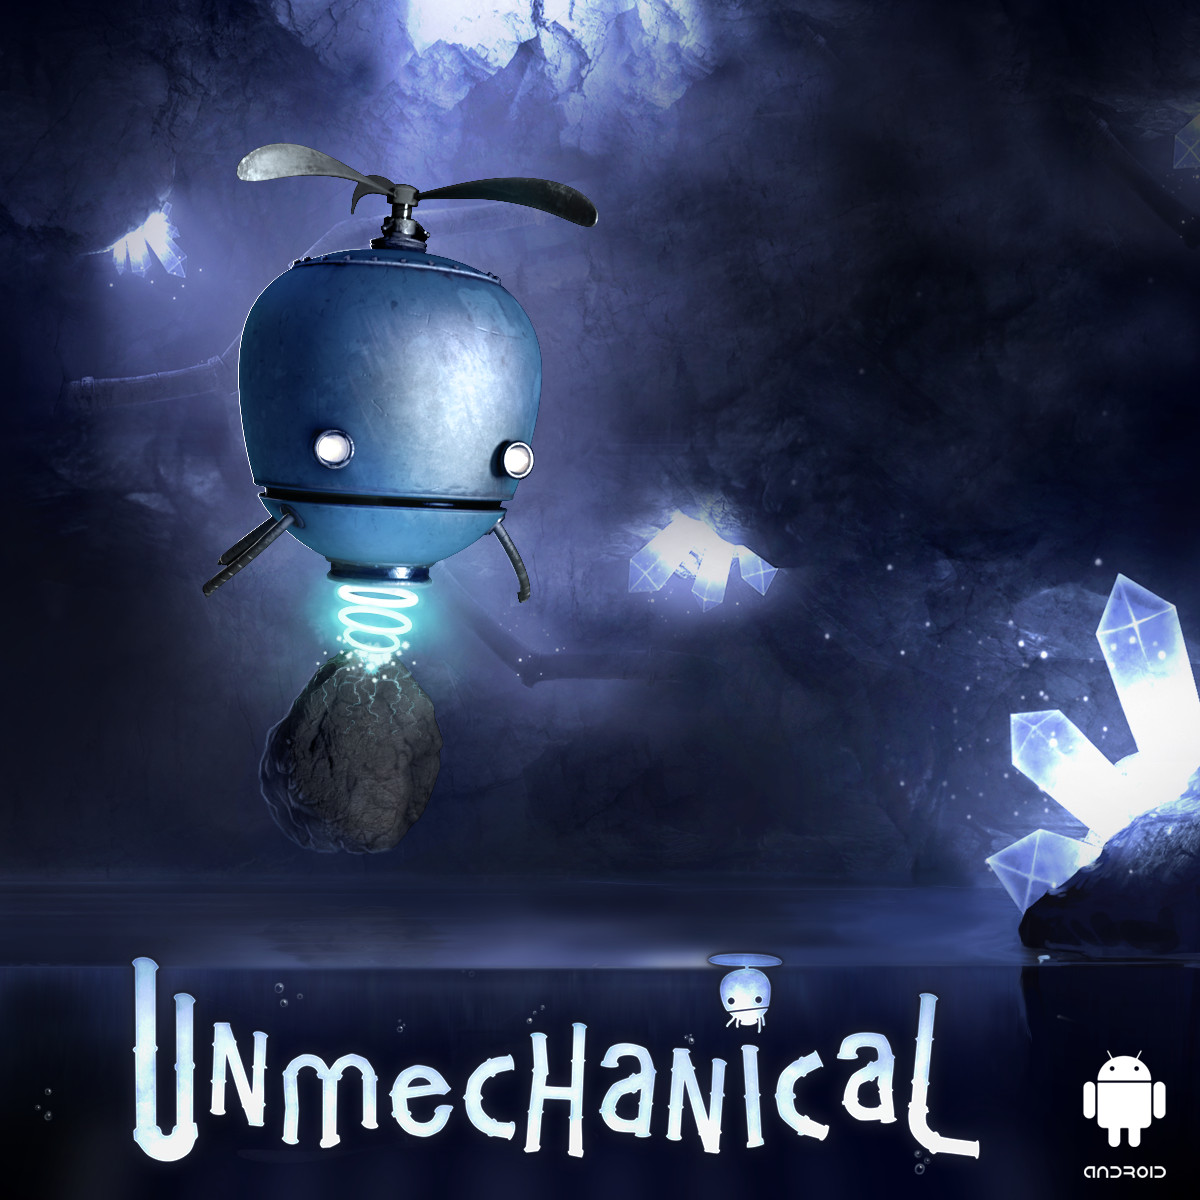 Unmechanical, the Unreal powered robotic physics puzzler, is set to hit Android next week